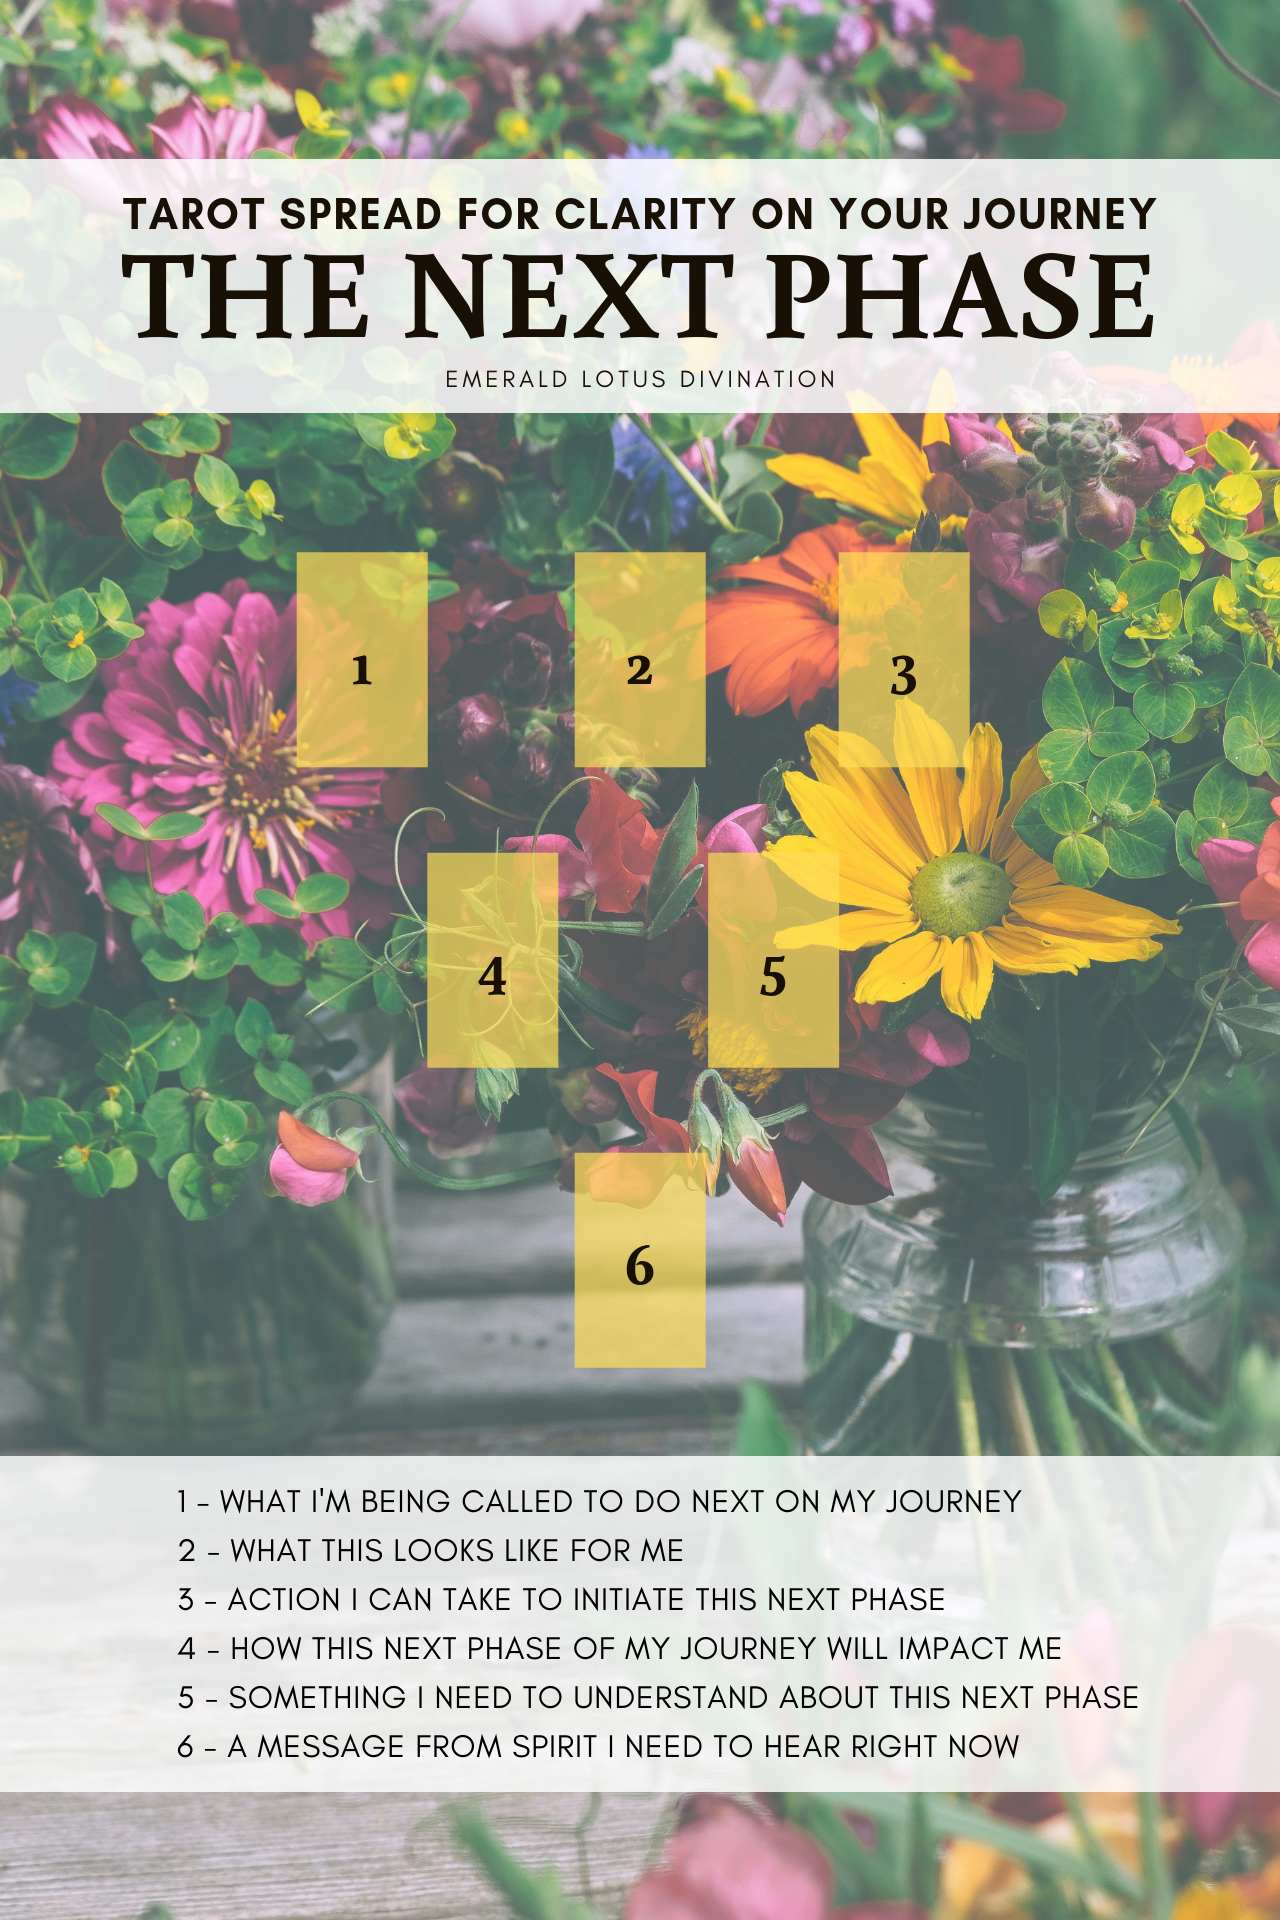 The-Next-Phase-Tarot-Spread-Emerald-Lotus-Divination-1.png